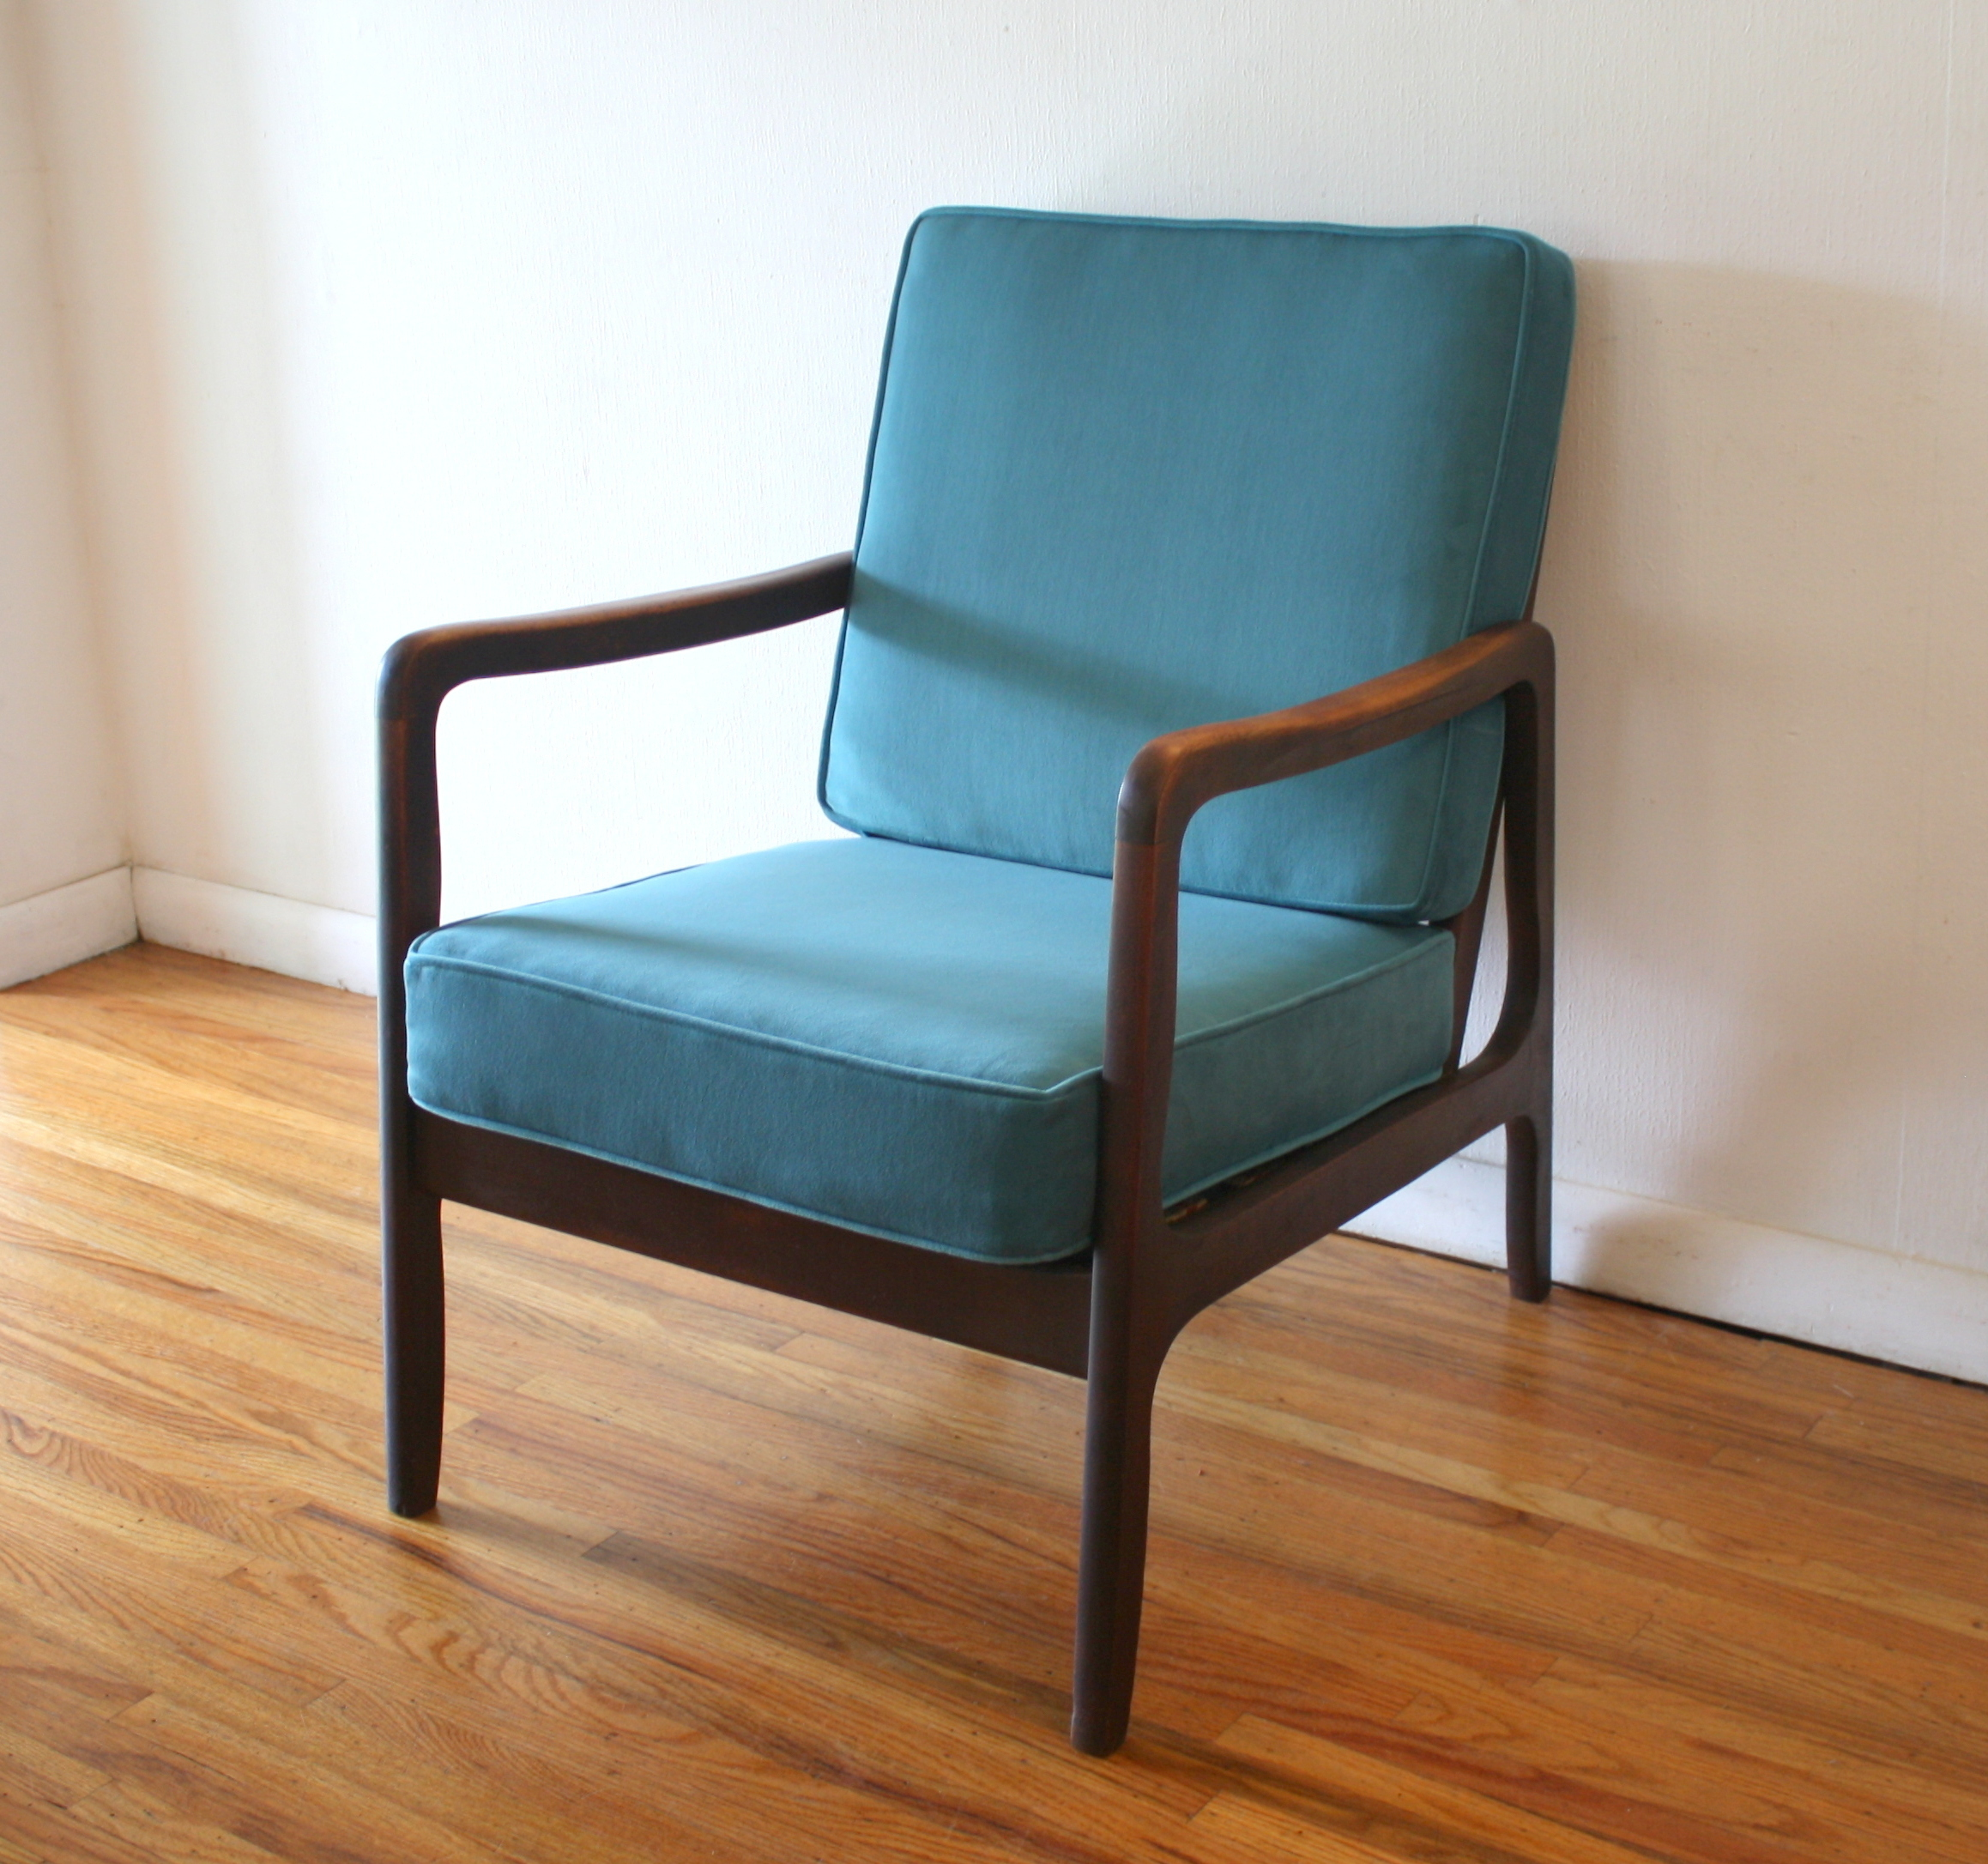 mcm arm chair teal velvet cushions 1.JPG